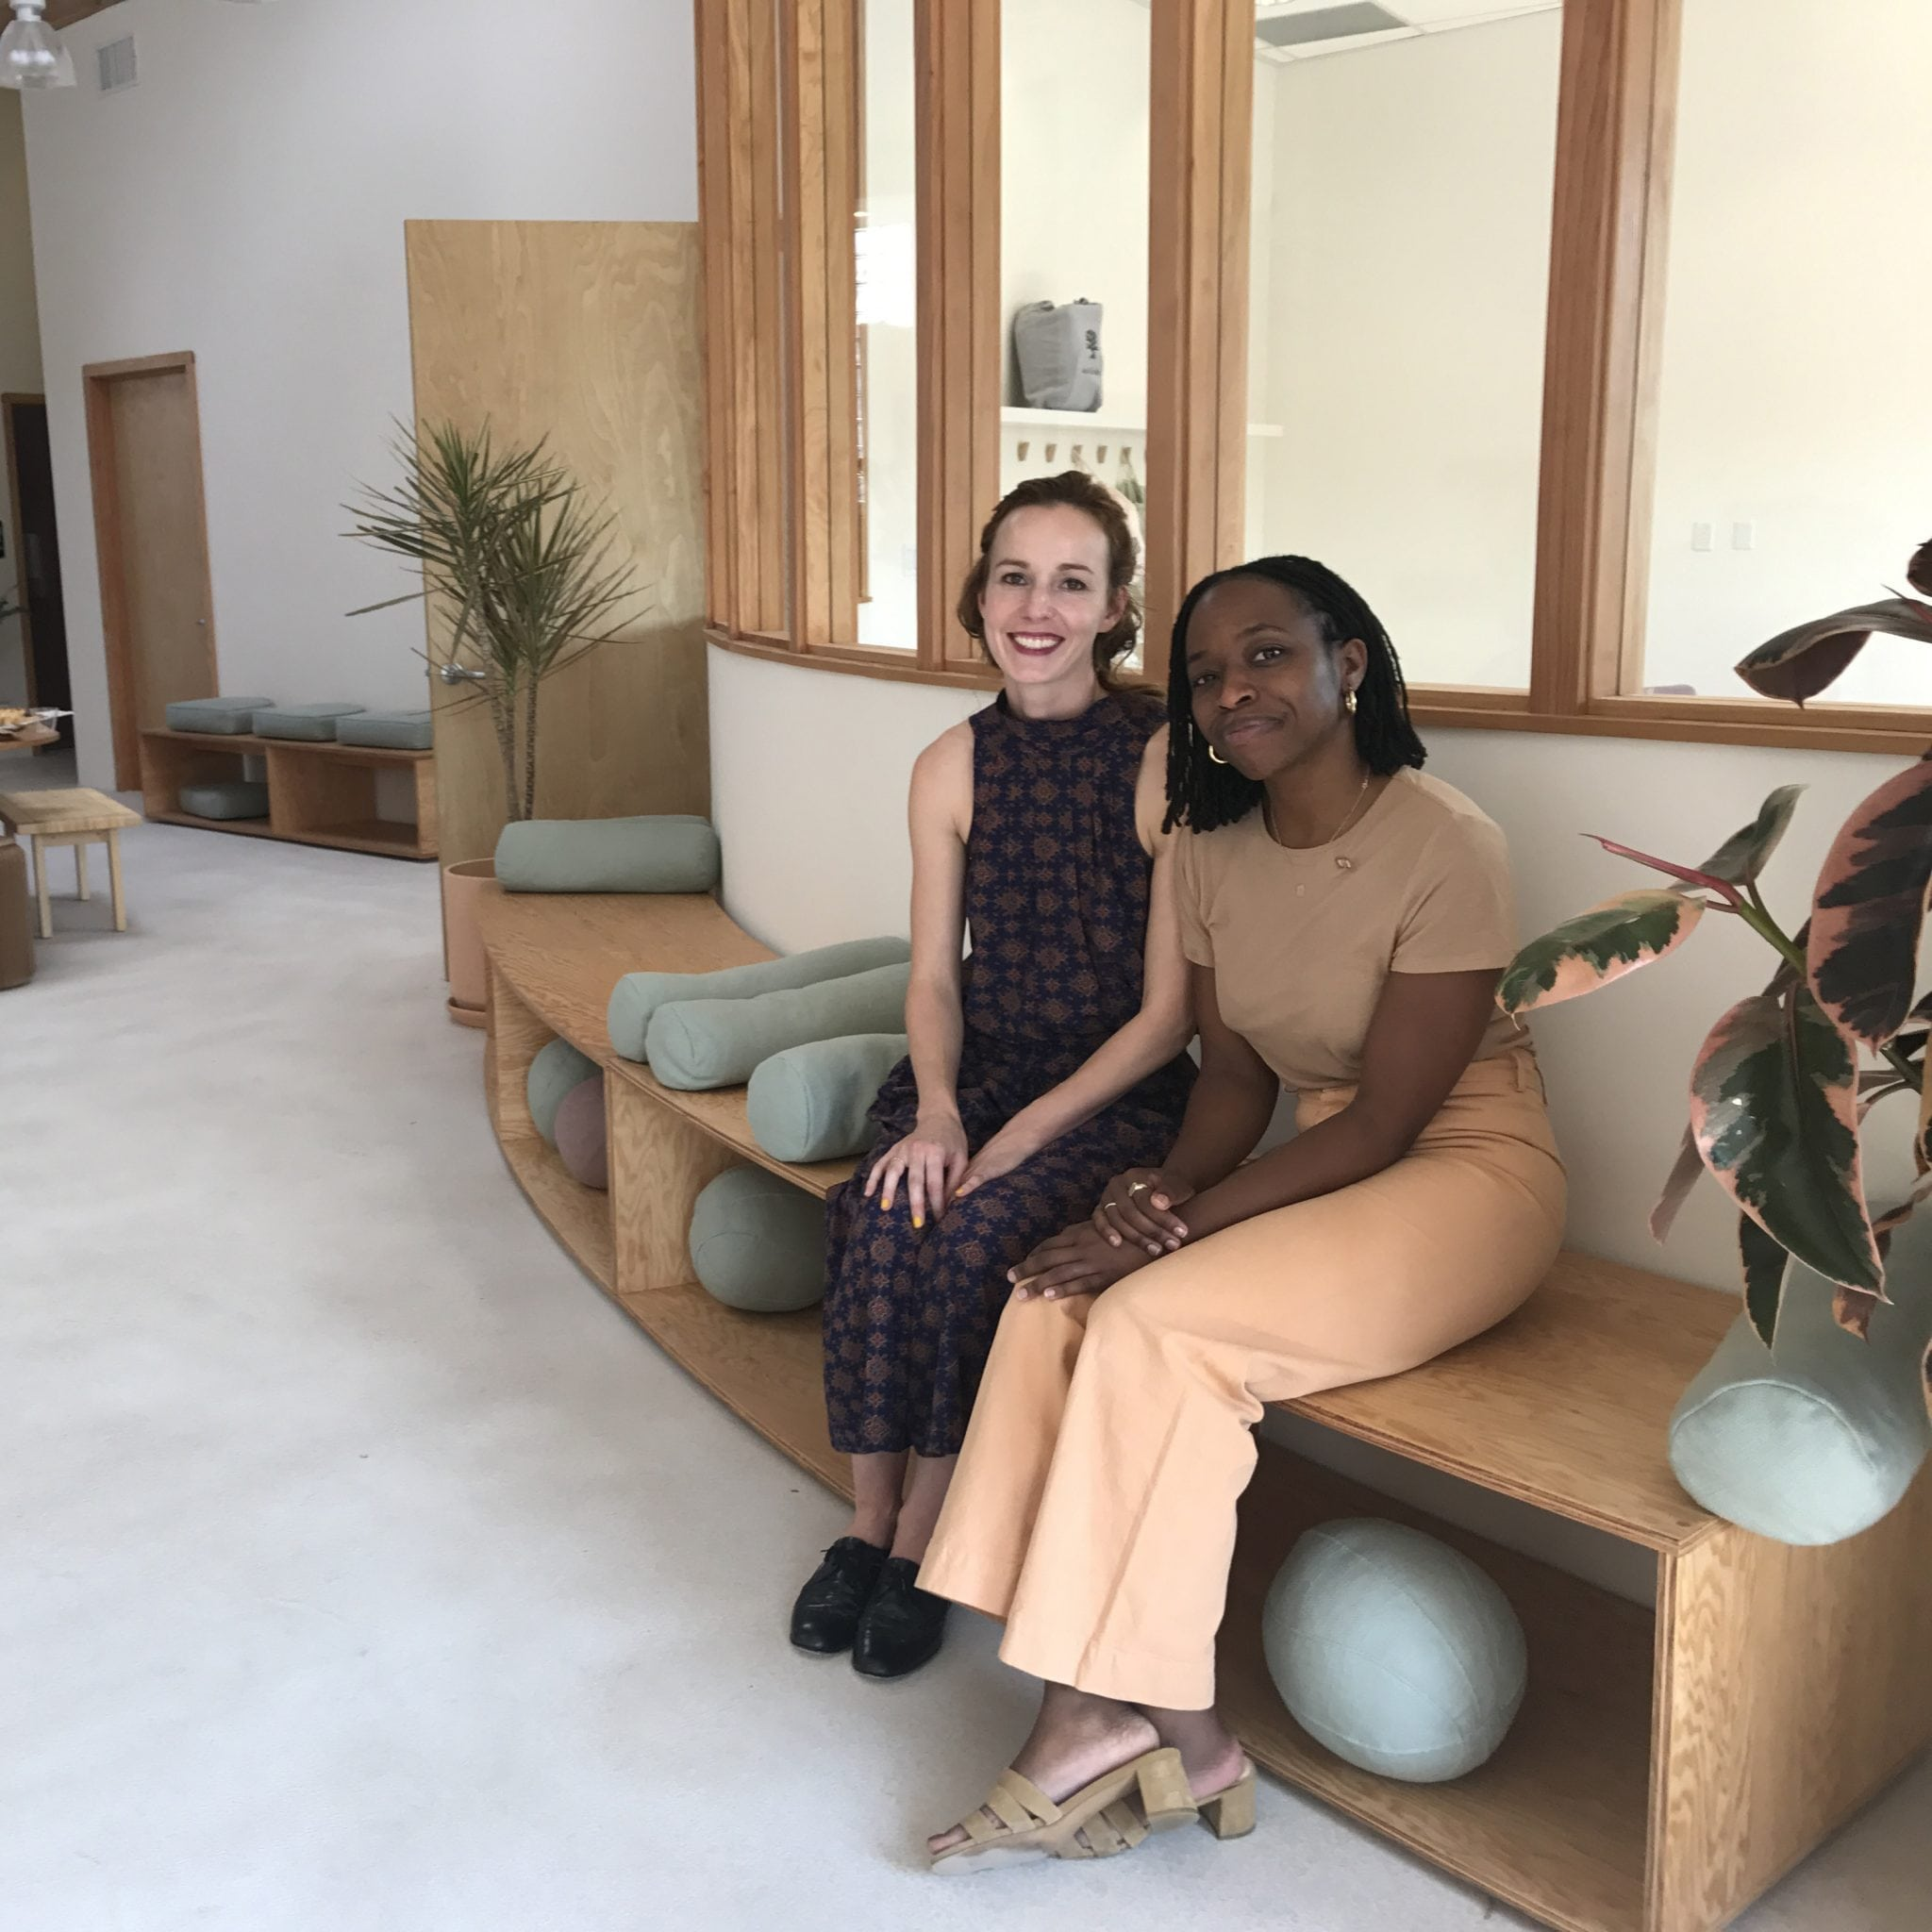 Parenting in Los Angeles